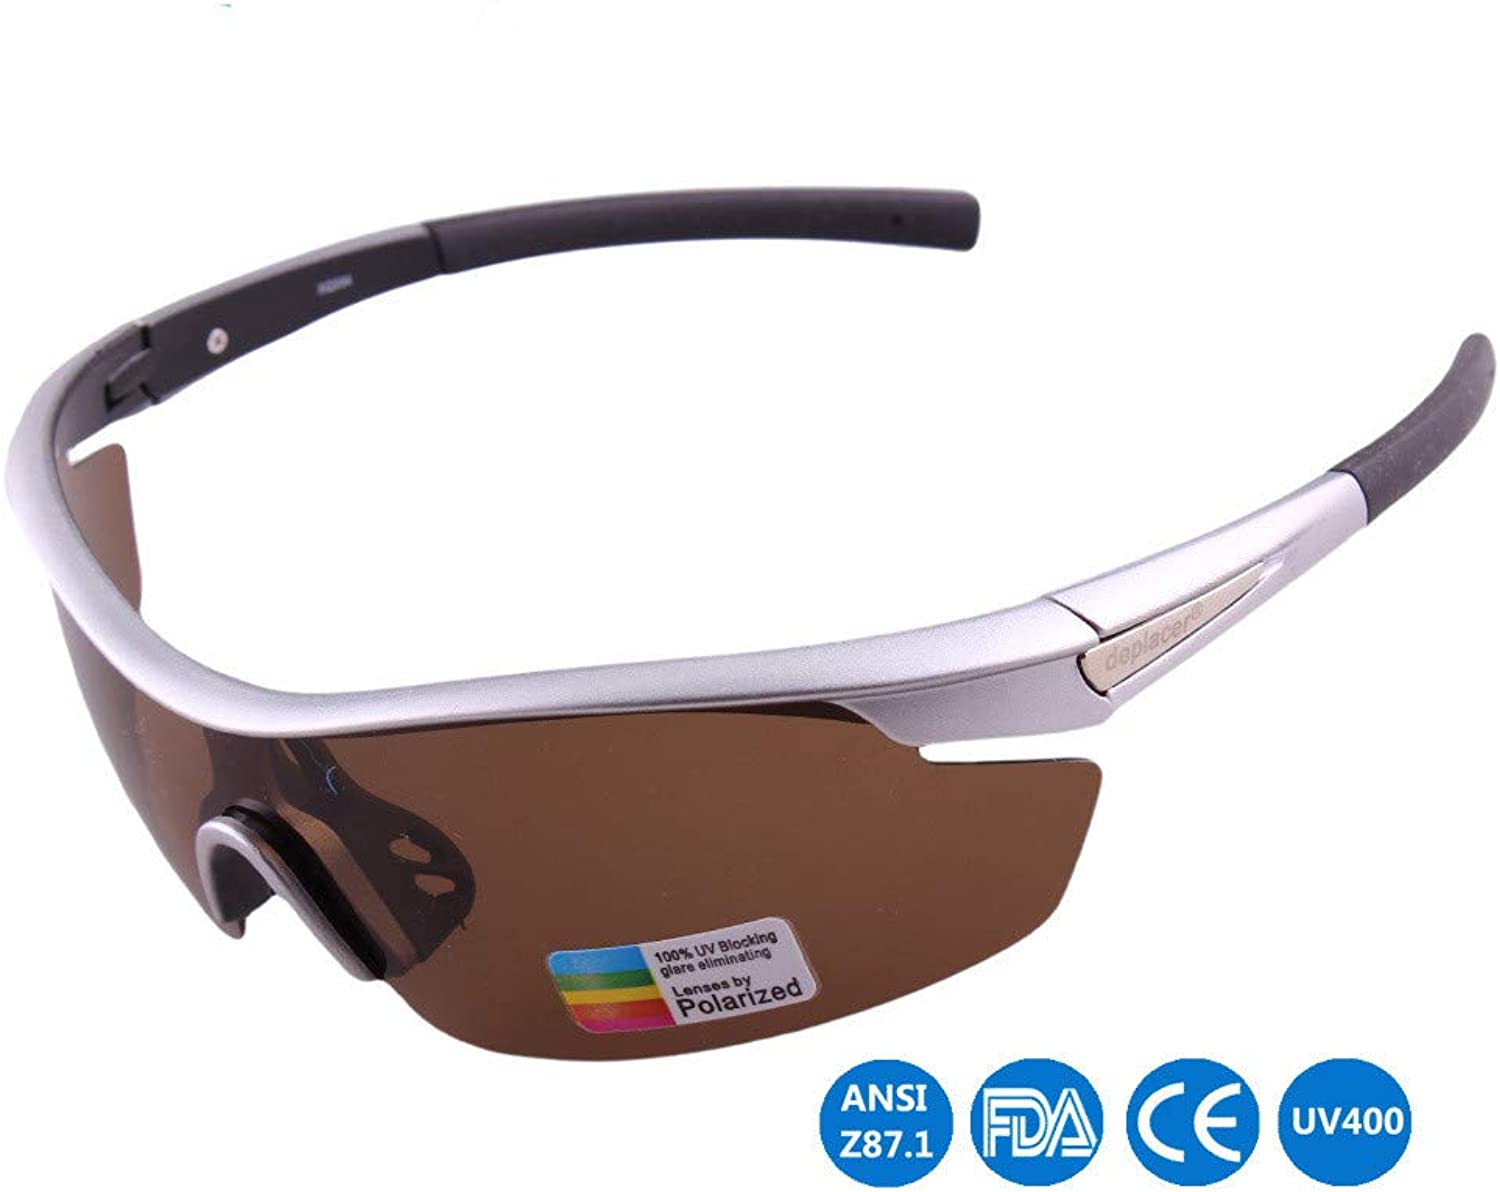 4a650f218 Cycling Running Glasses Polarized Driving Sports Outdoor Fishing Cycling  Sport Glasses Contracted Portable Unisex